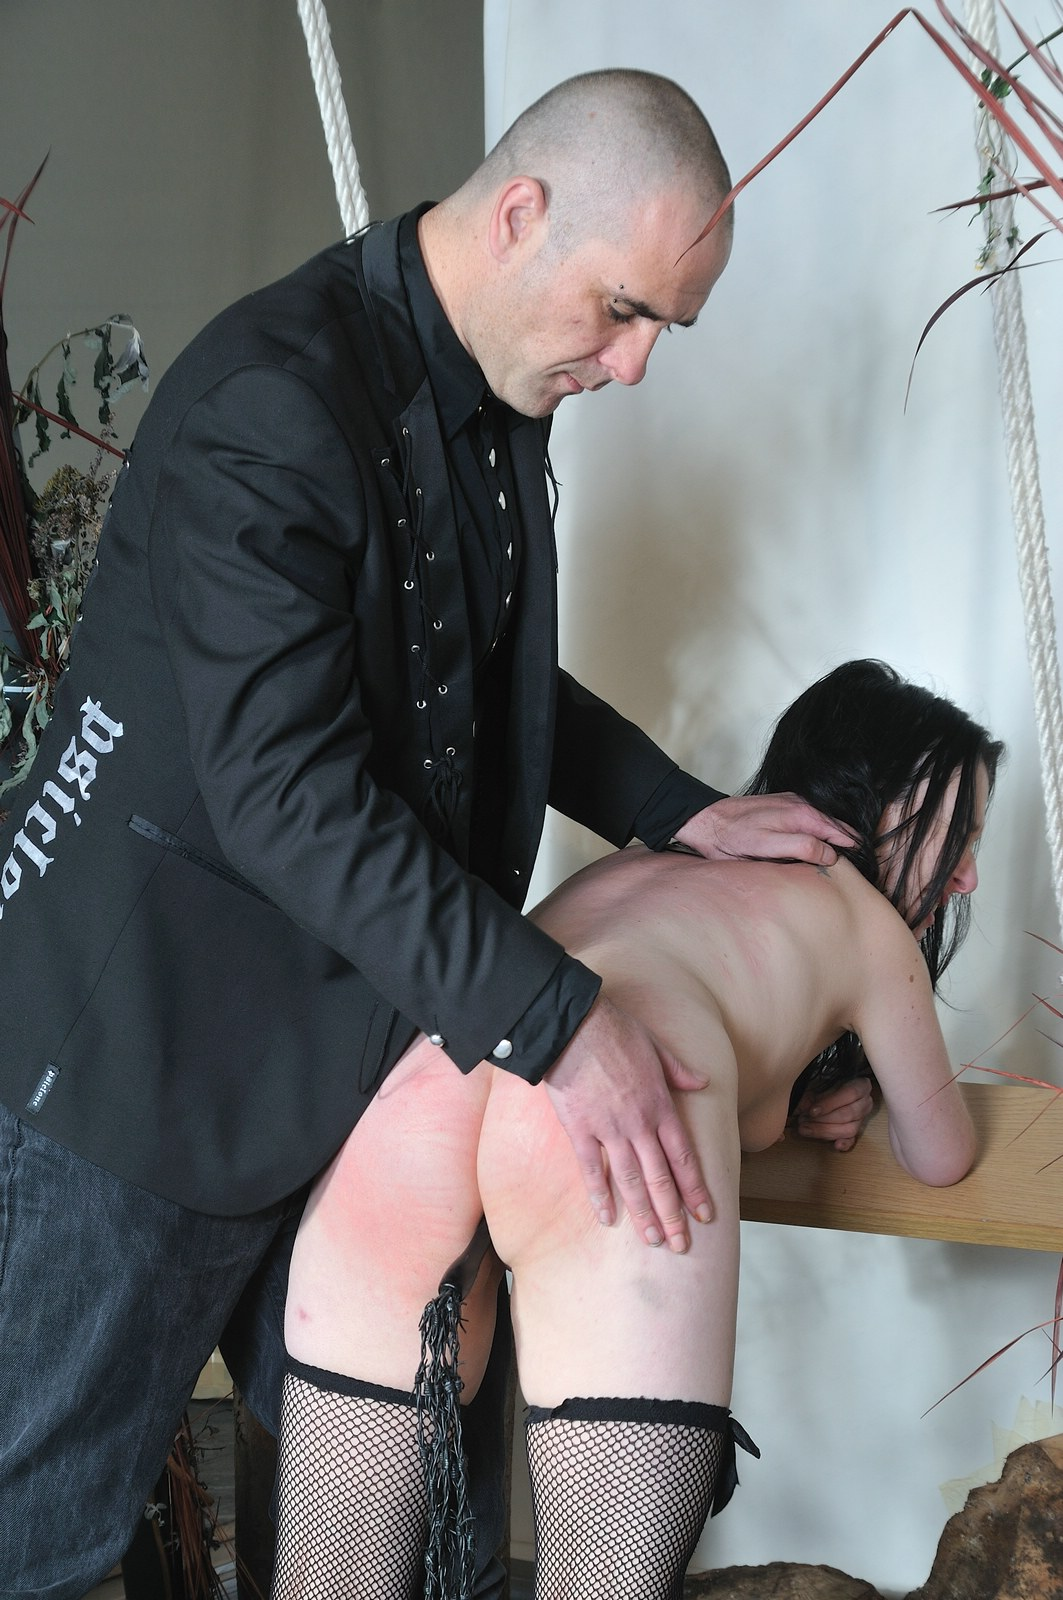 For the full length slavesex movie and more kinky fetish films Join the  Shadow Slaves VIP Members club with plenty of long HD BDSM movies and amateur  slave ...